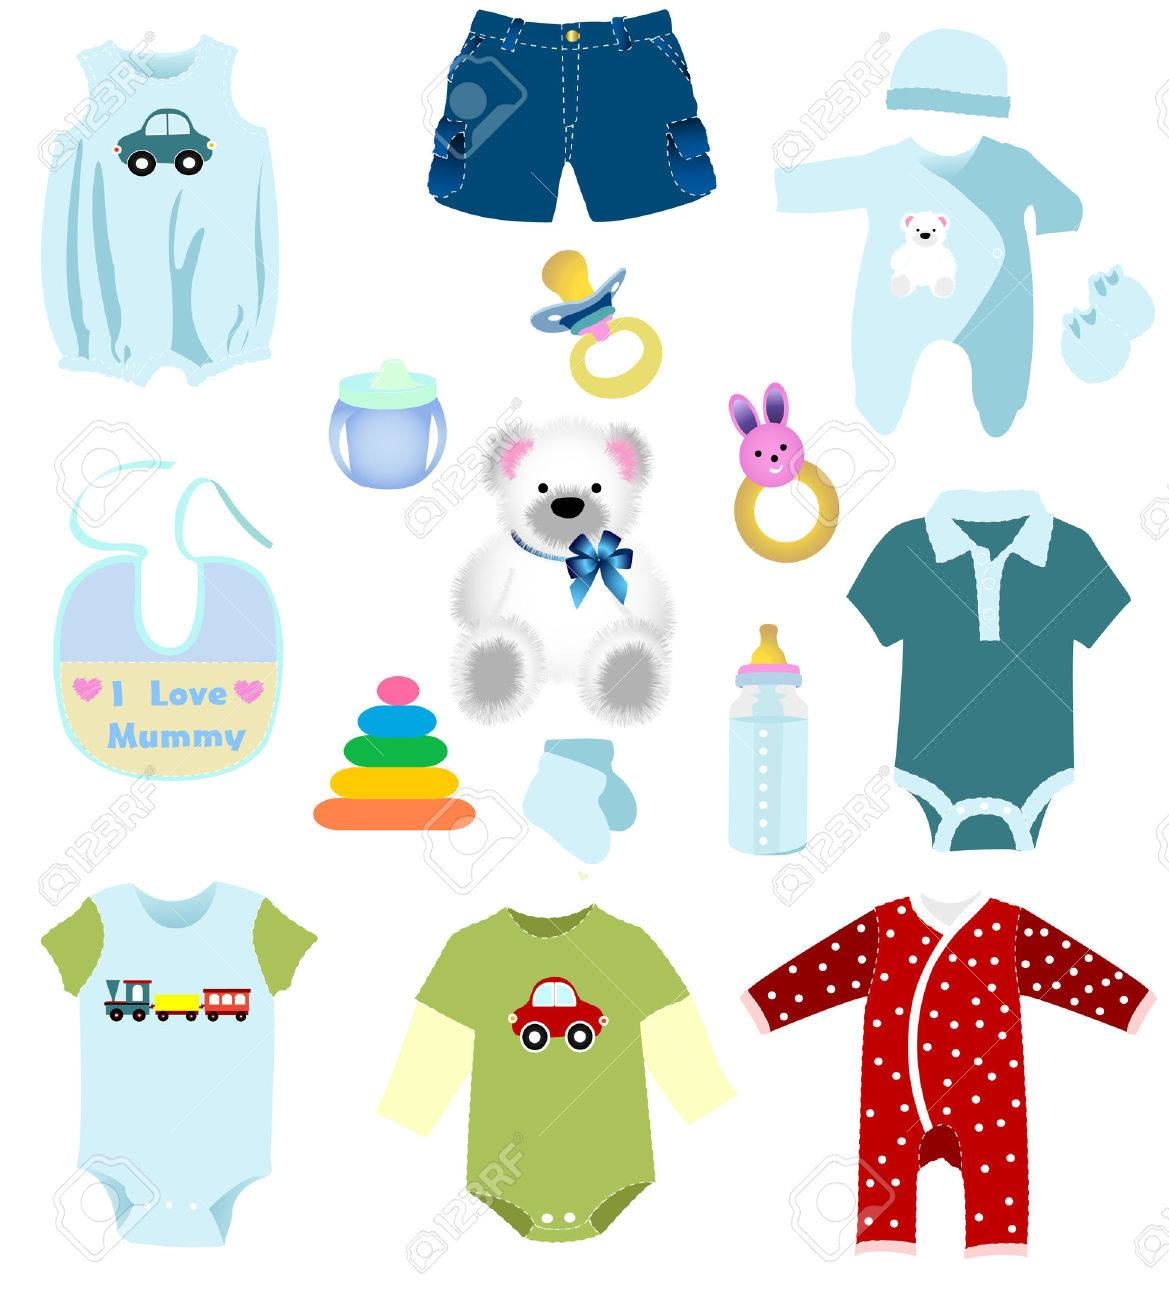 8050233 Baby boy elements Stock Vector shirt template clothes baby boy elements royalty free cliparts, vectors, and stock,Childrens Clothes Templates